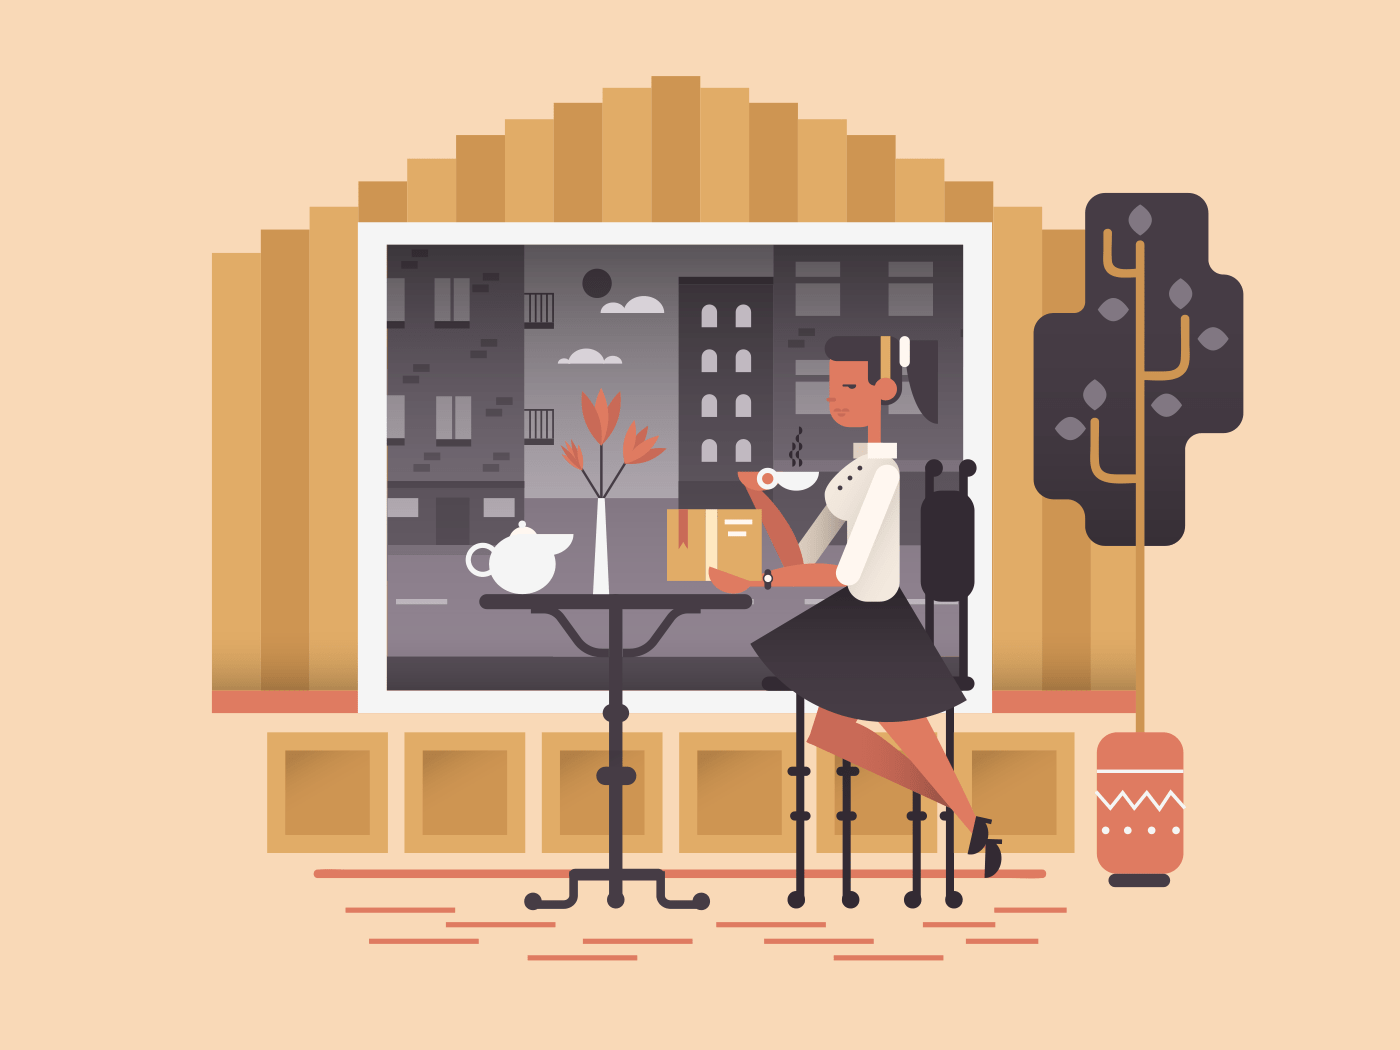 Girl sit in cafe illustration